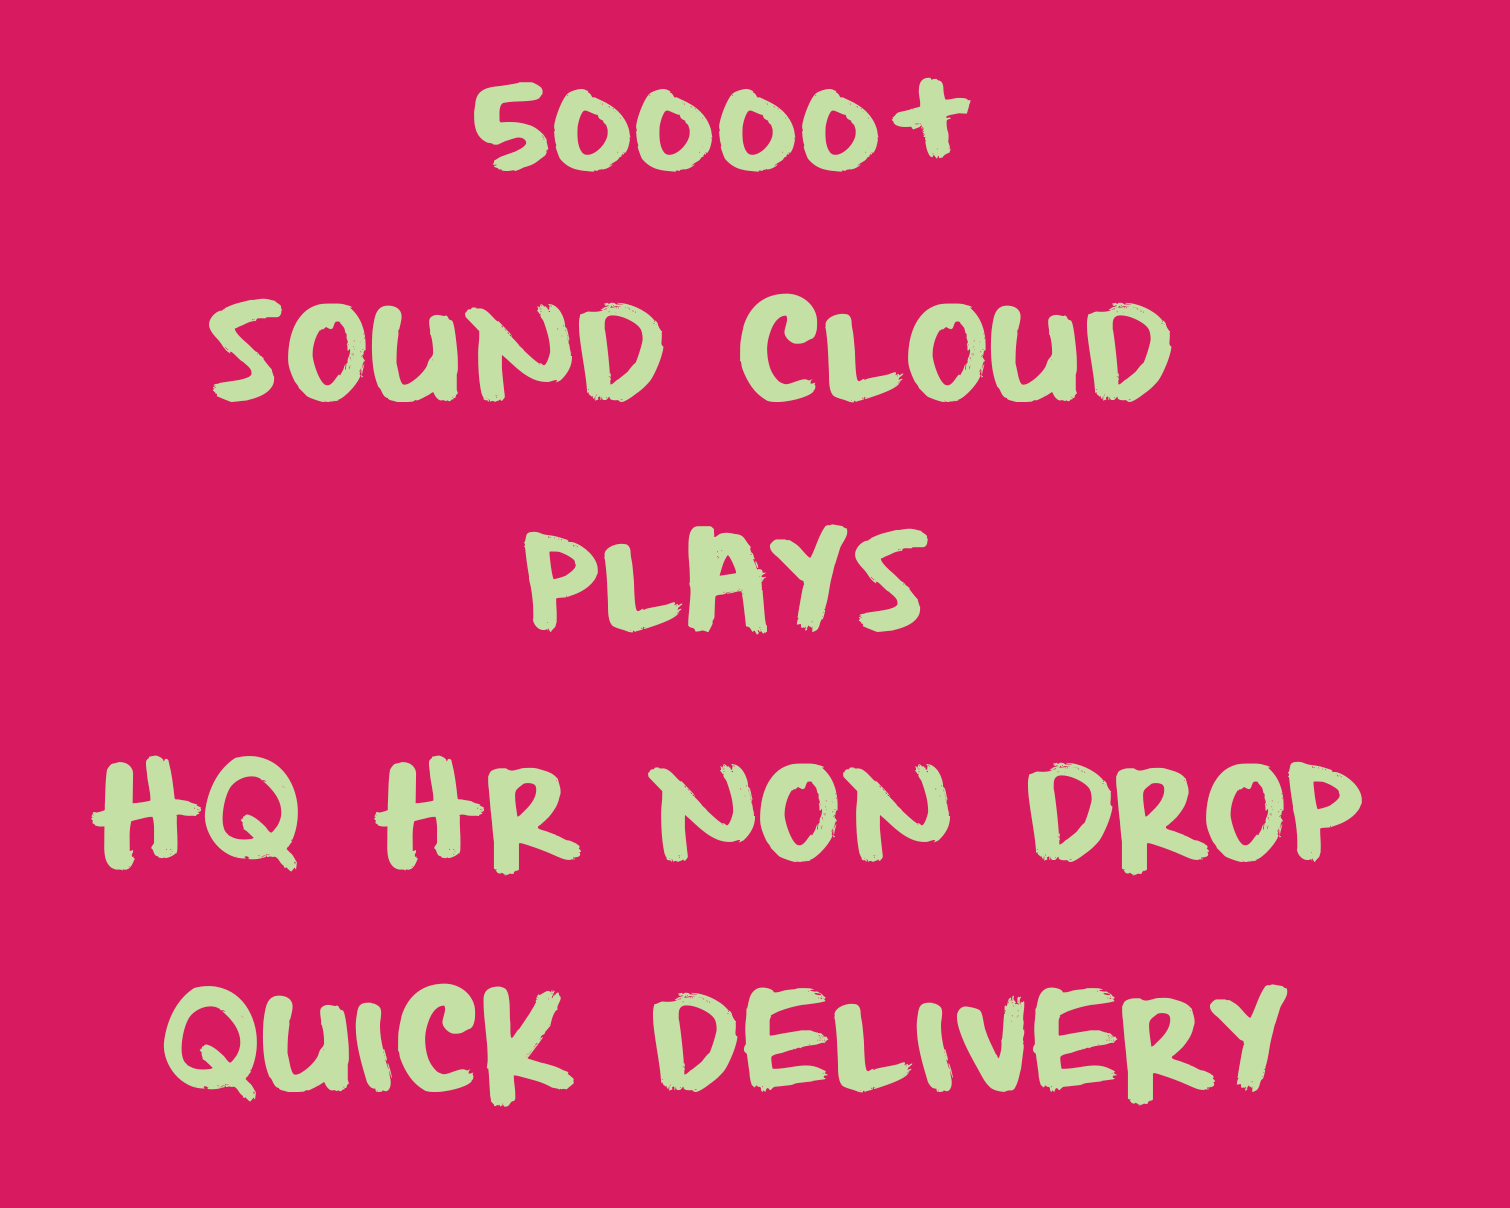 Get 50000+ HQ,HR & Non Drop sound track promotions quickly